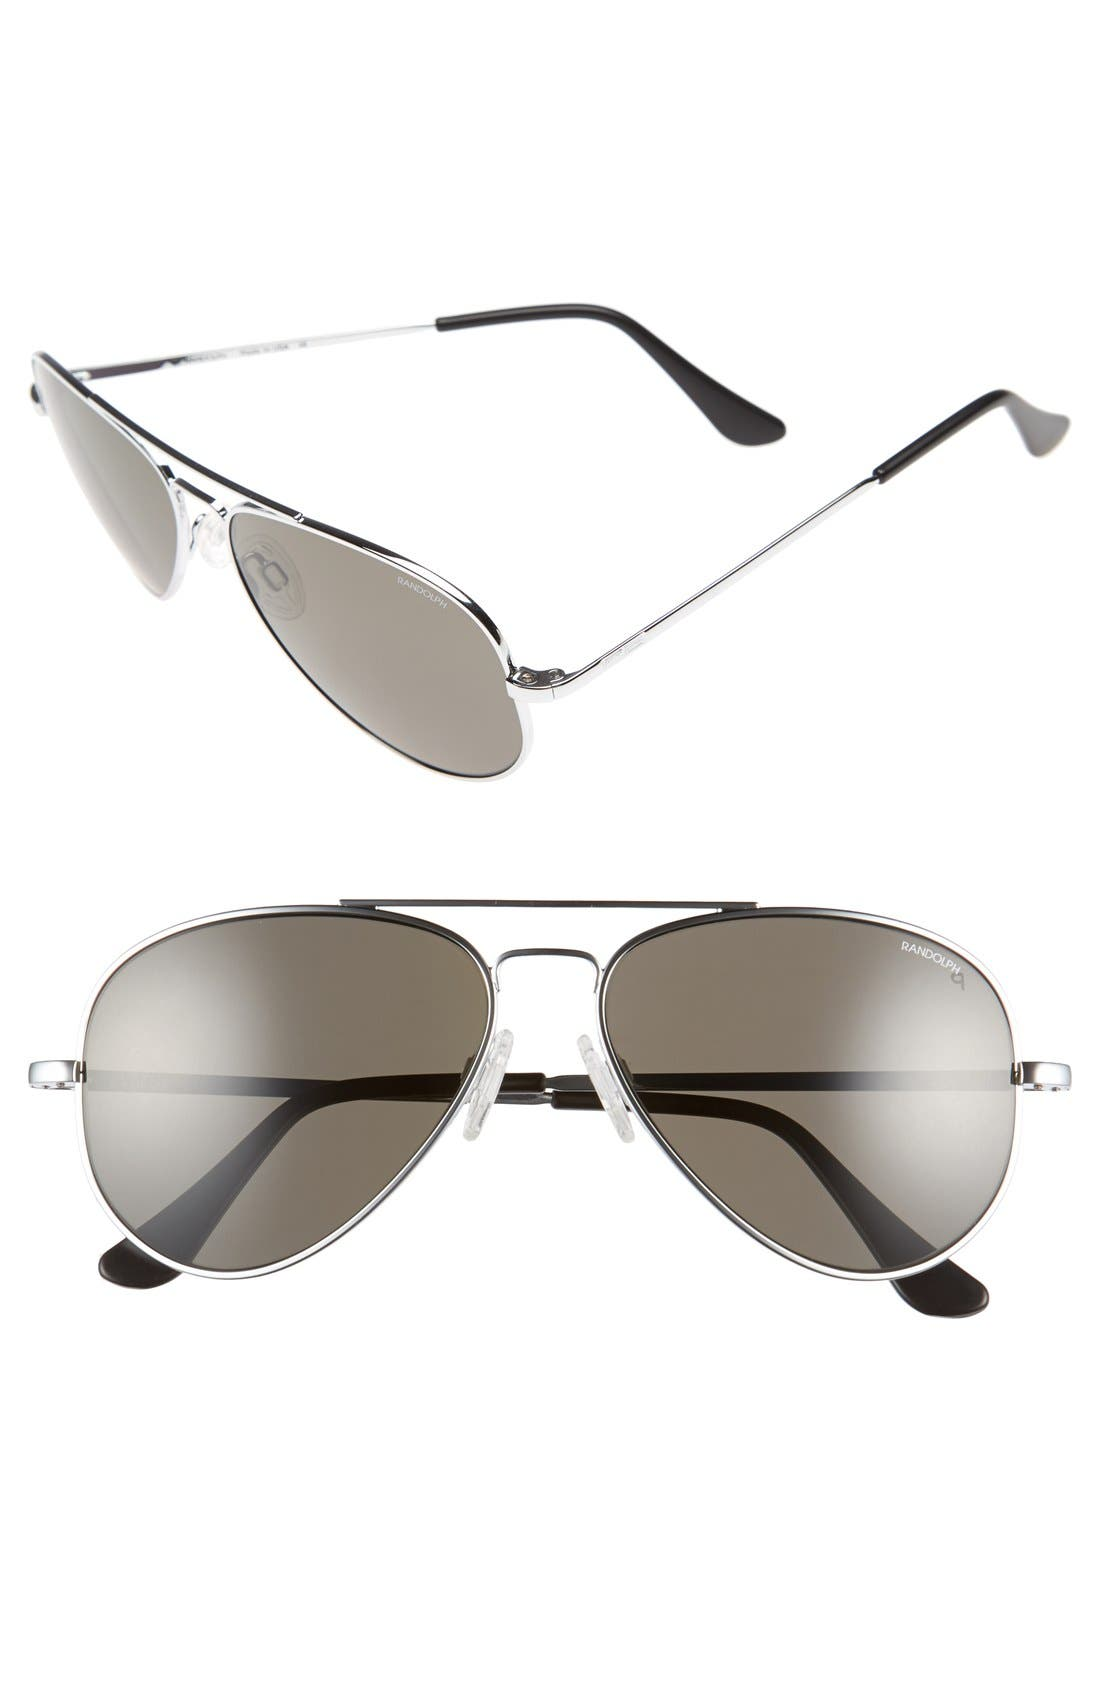 Randolph Engineering 'Concorde' 57mm Polarized Sunglasses